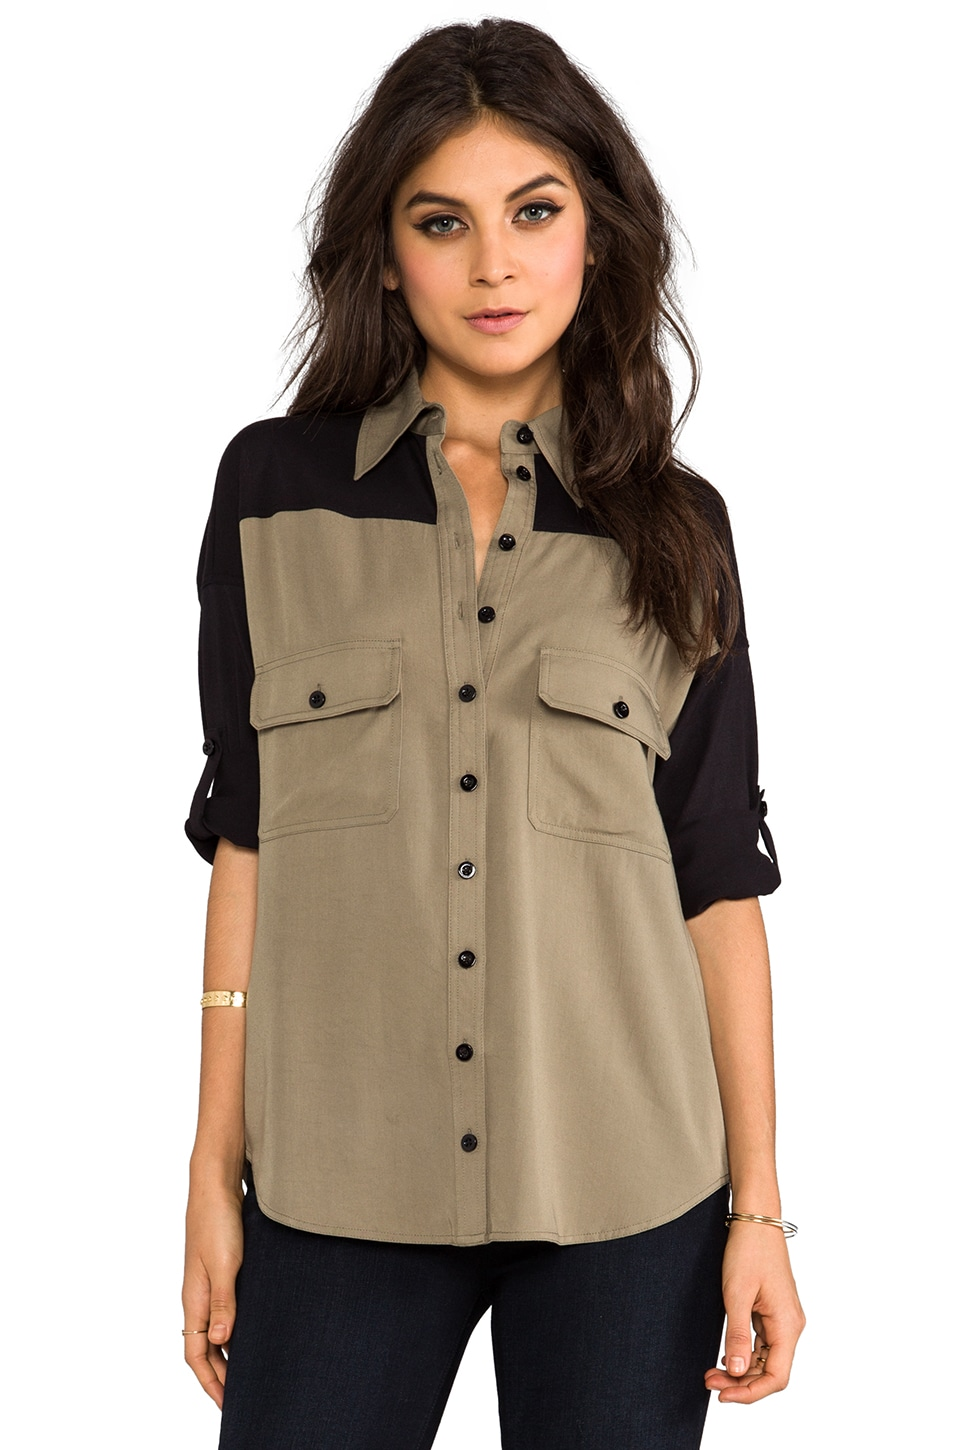 primary Combo Wingback Shirt in Military Green/Black